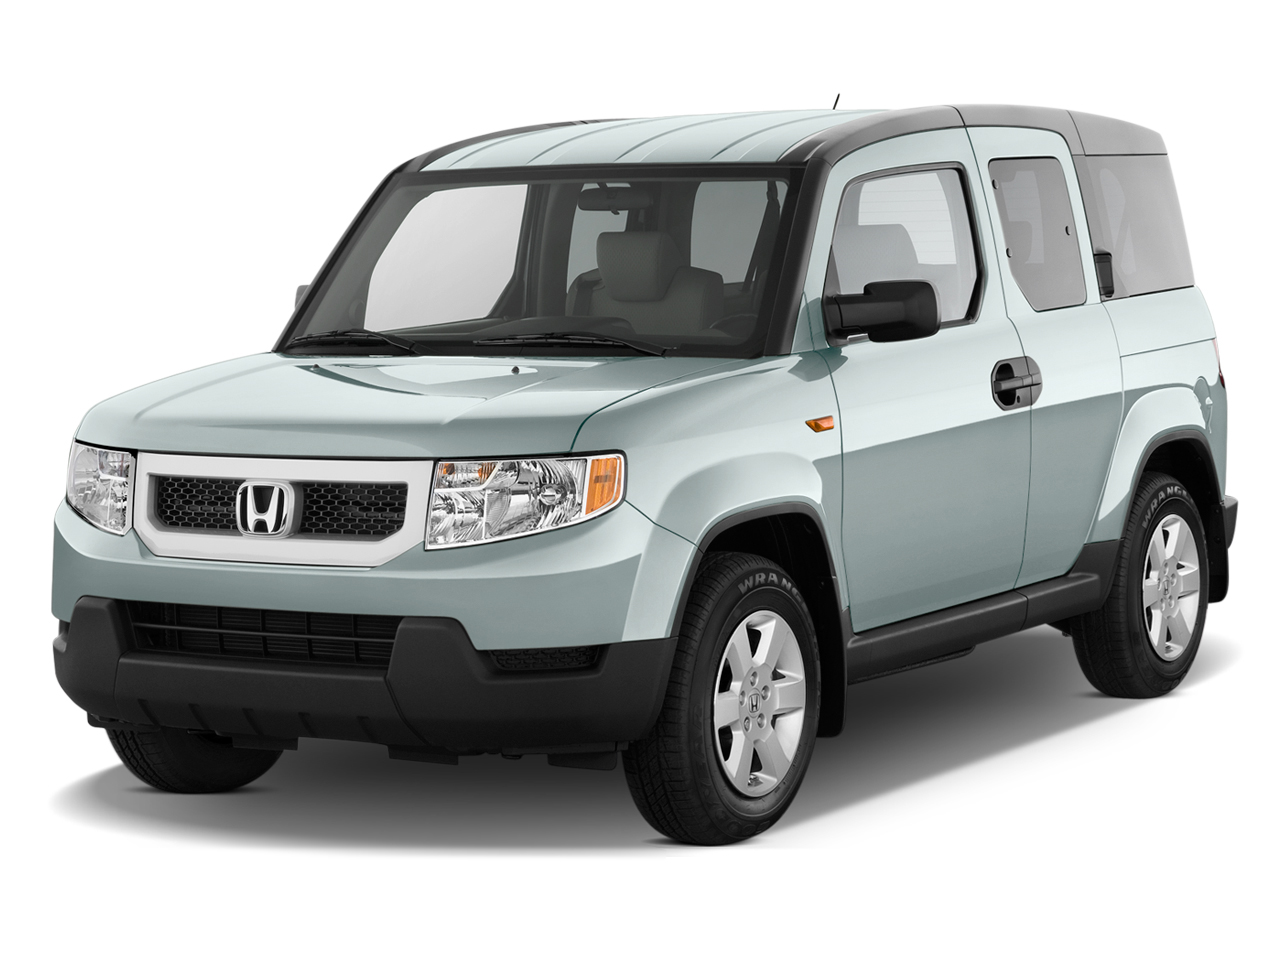 new and used honda element prices photos reviews specs the car connection. Black Bedroom Furniture Sets. Home Design Ideas